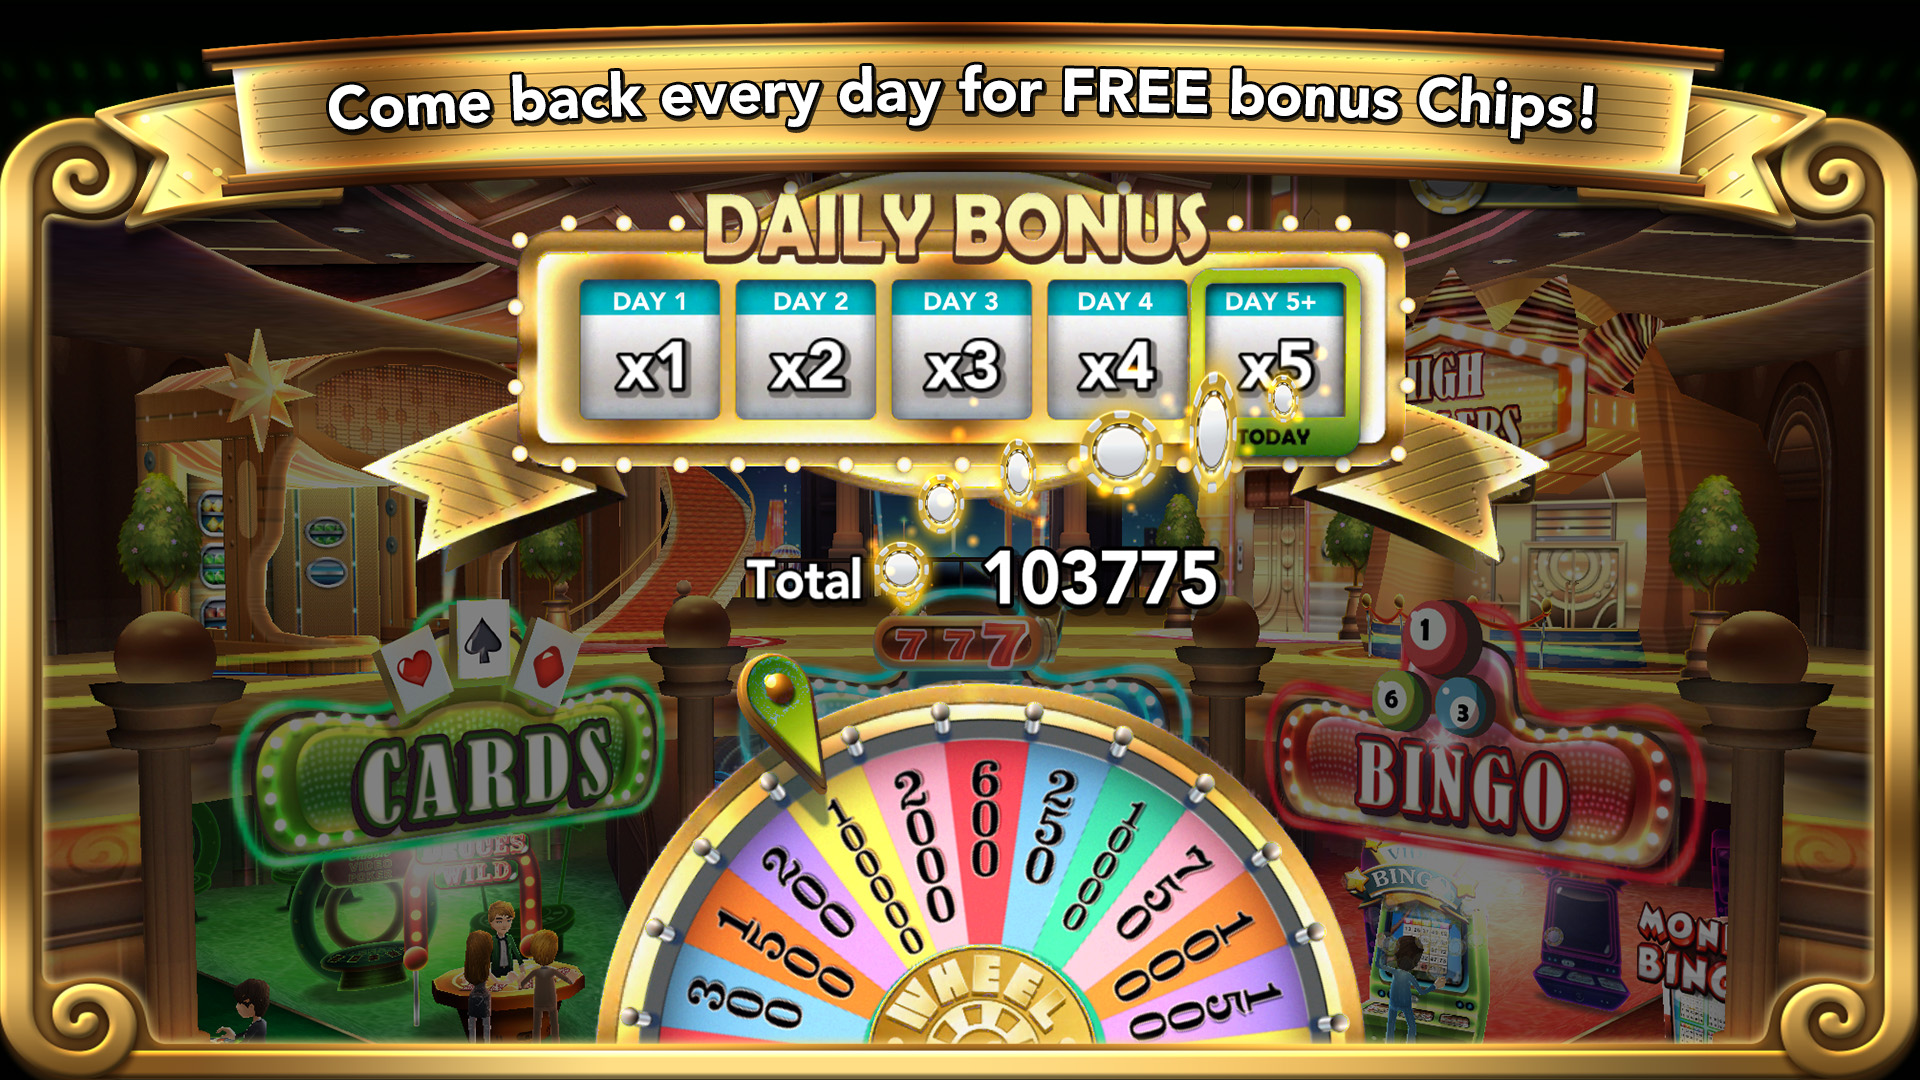 Grand casino free slots blackjack police department missouri